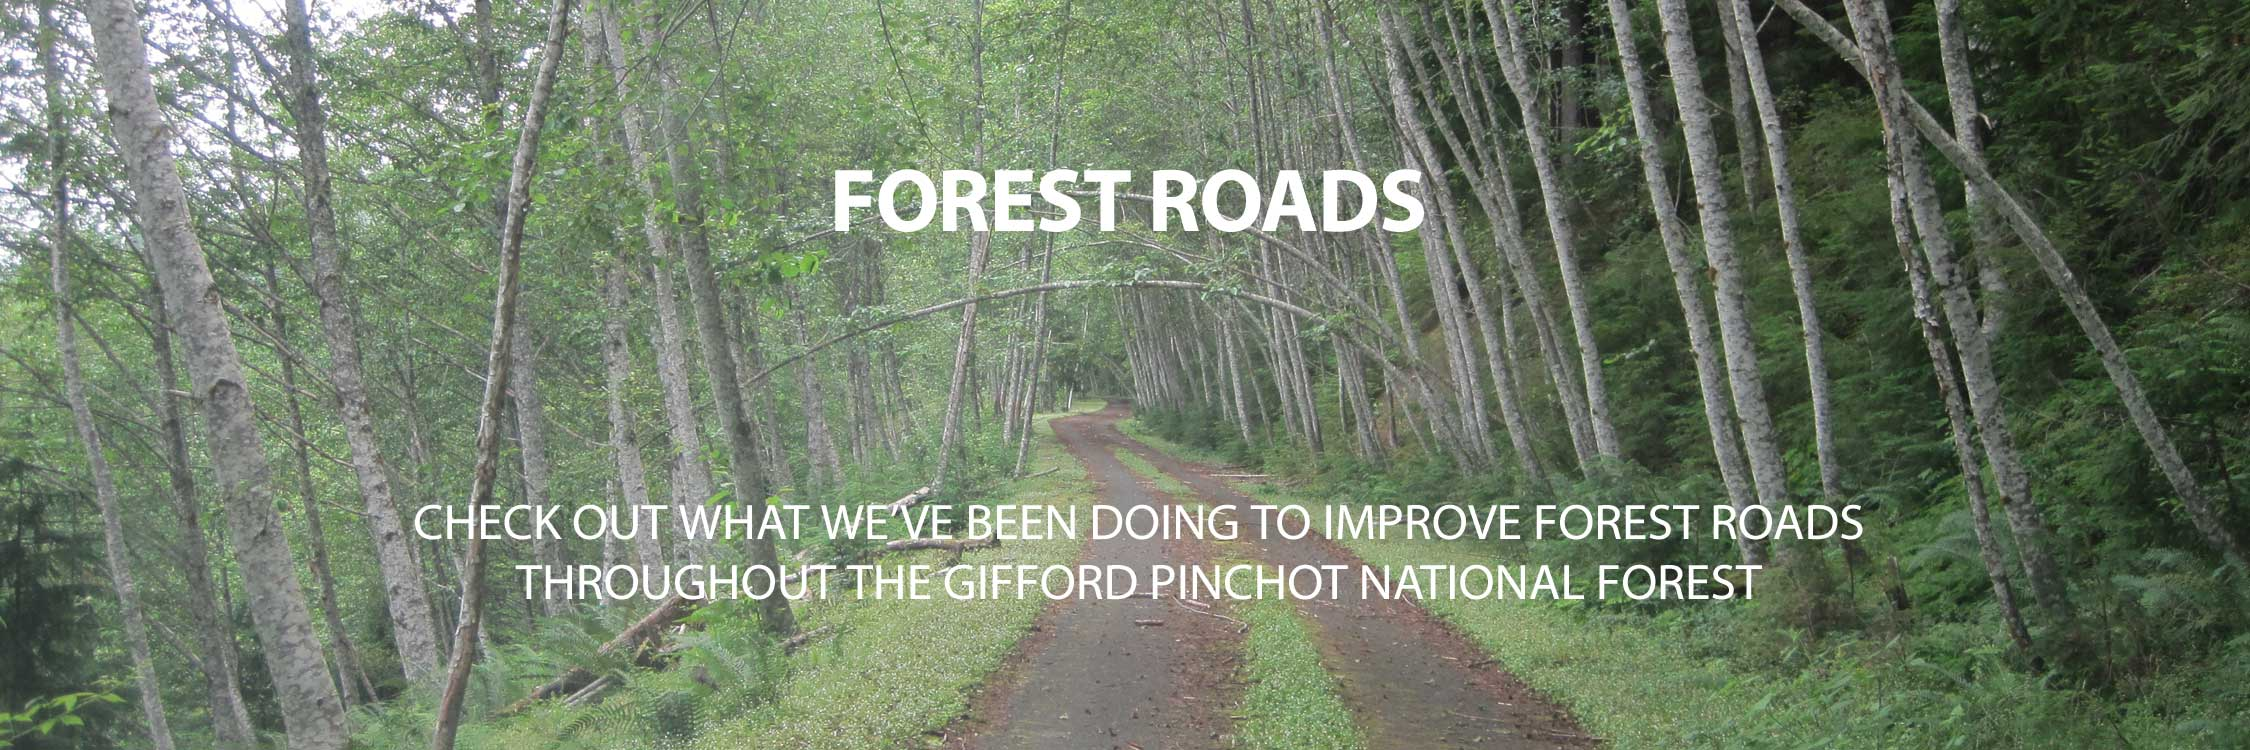 Forest-Roads-Banner